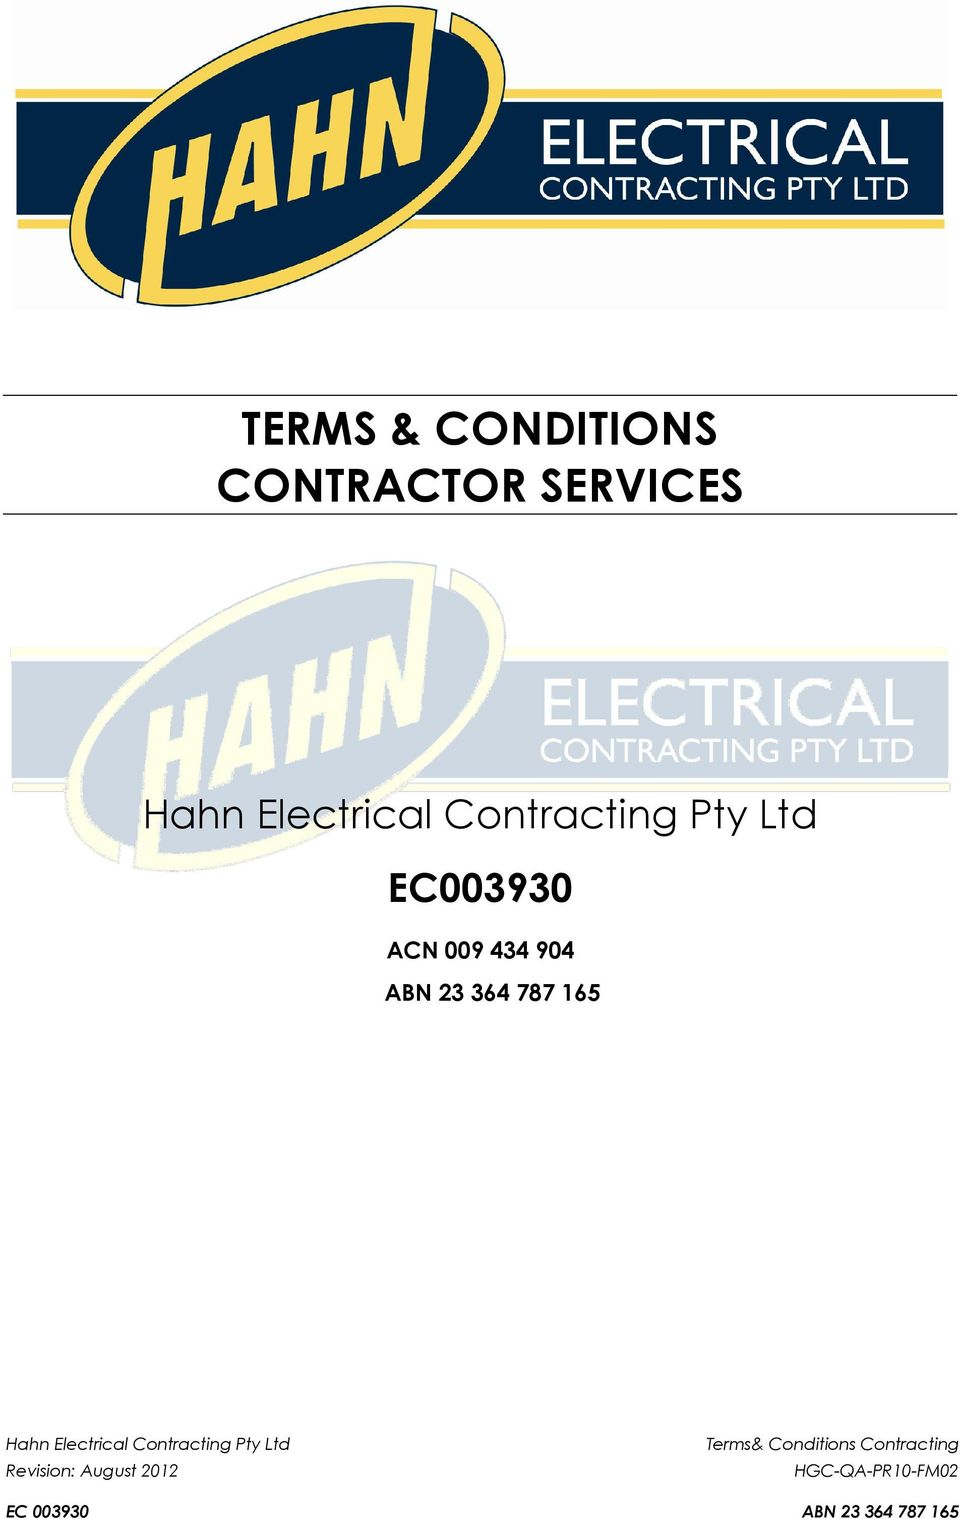 904 ABN 23 364 787 165 Hahn Electrical Contracting